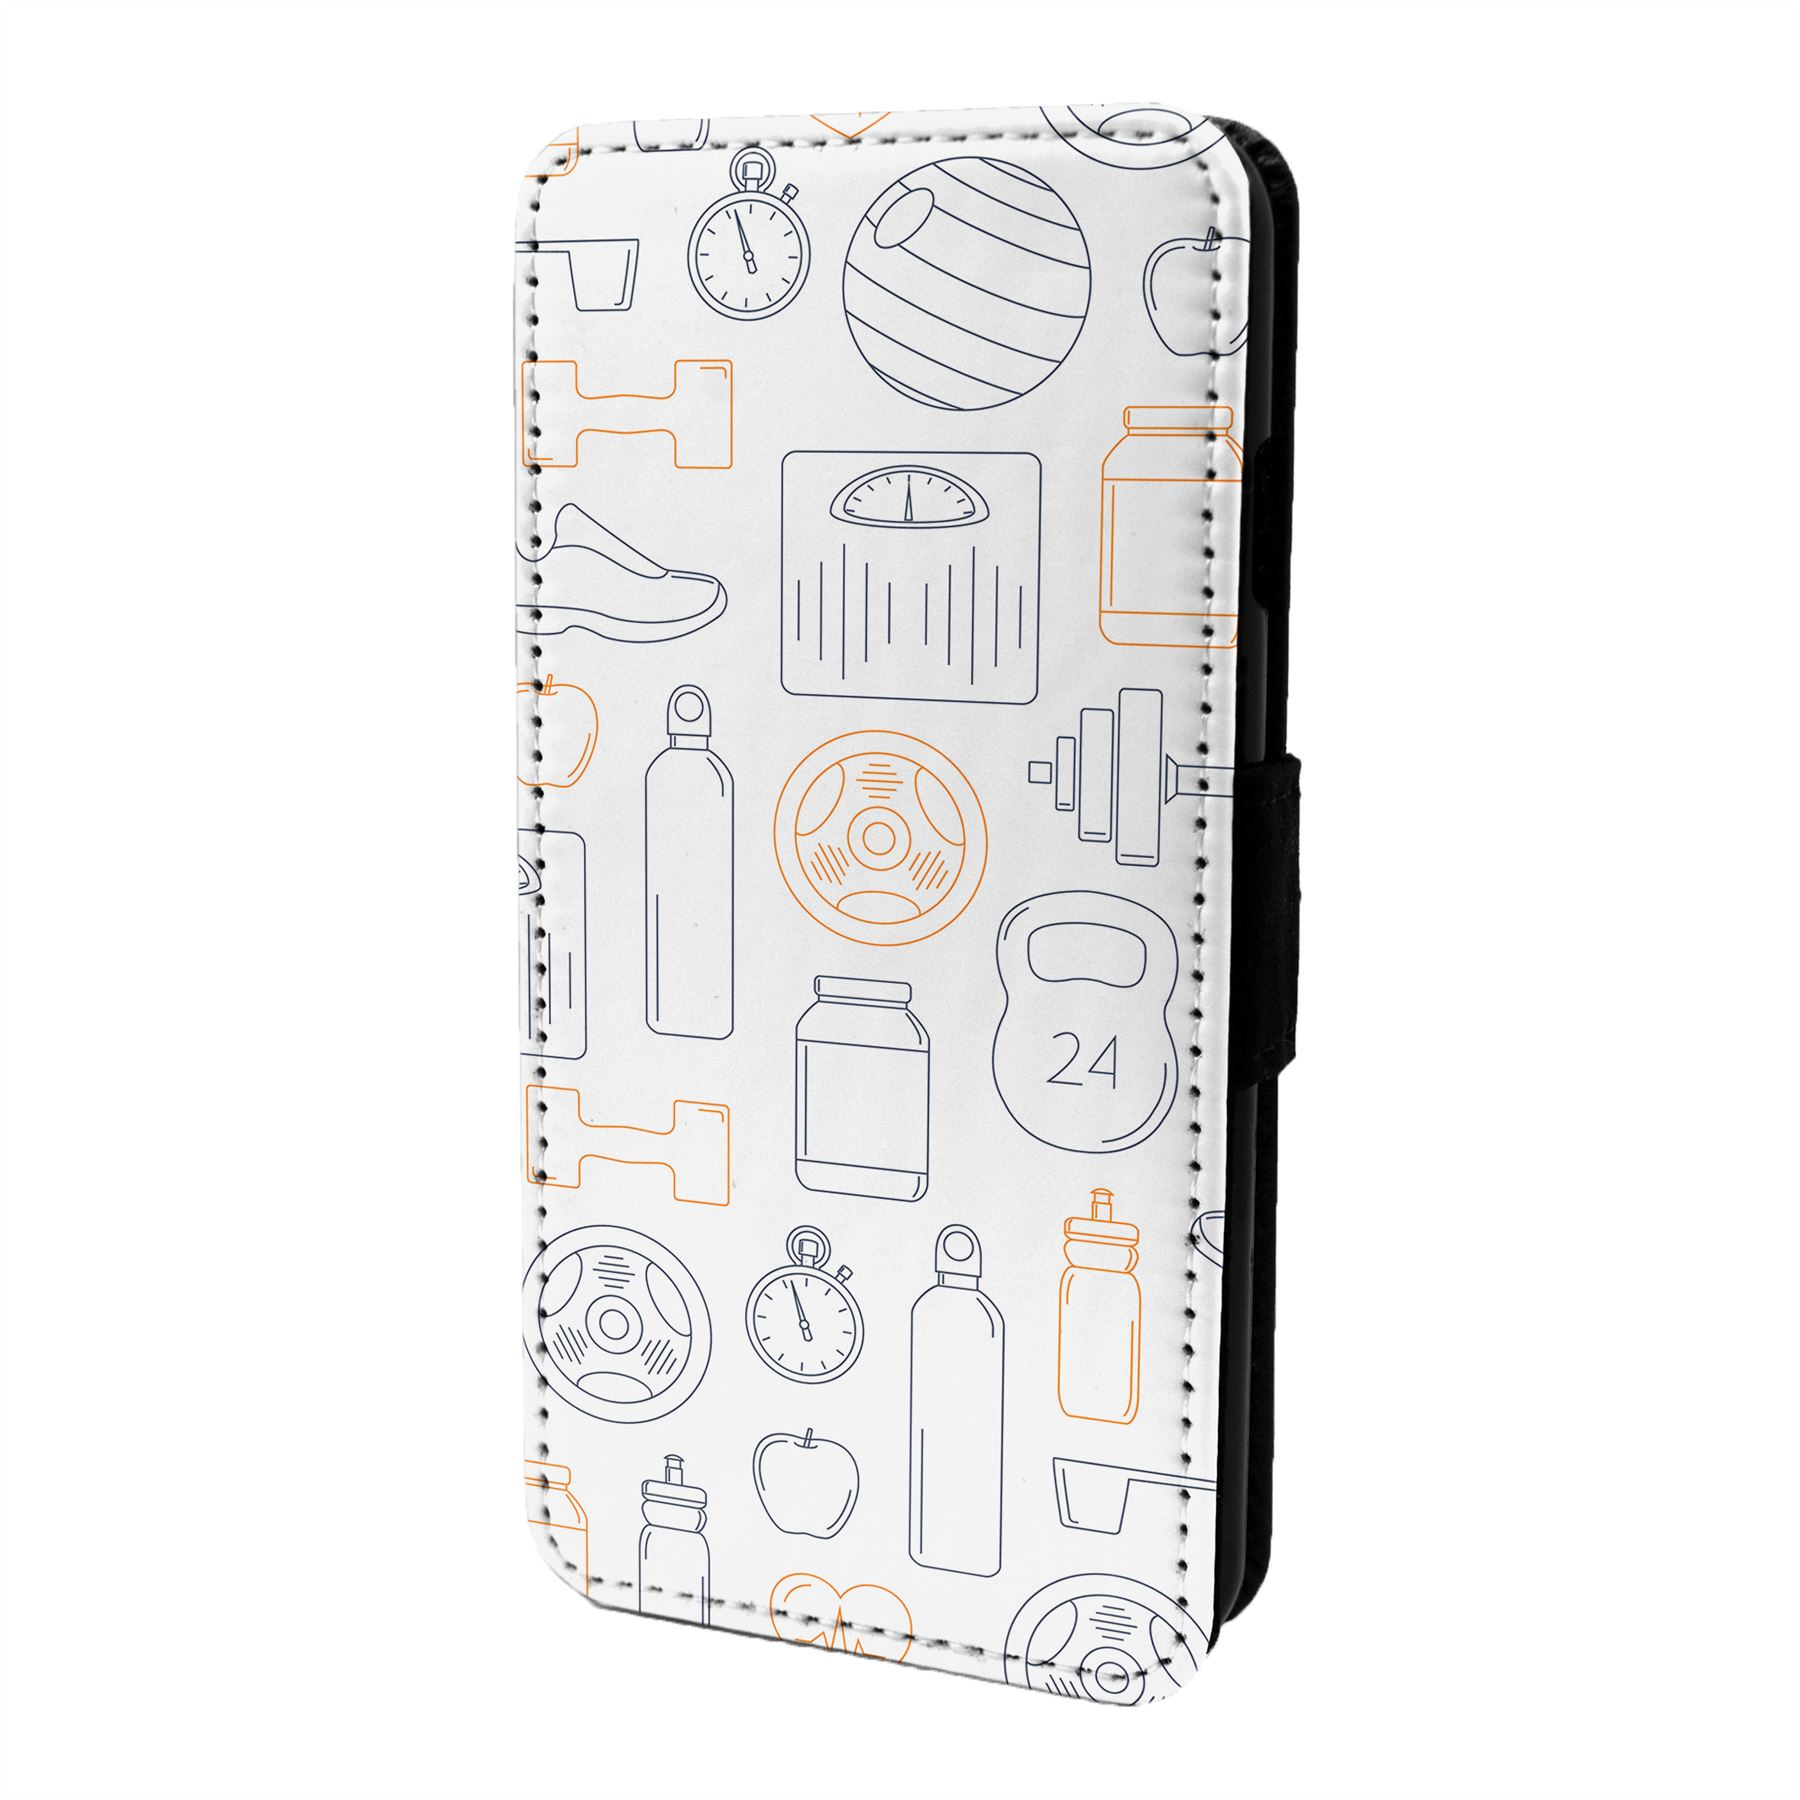 Fitness-Gym-Motif-Etui-Rabattable-pour-Telephone-Portable-S6694